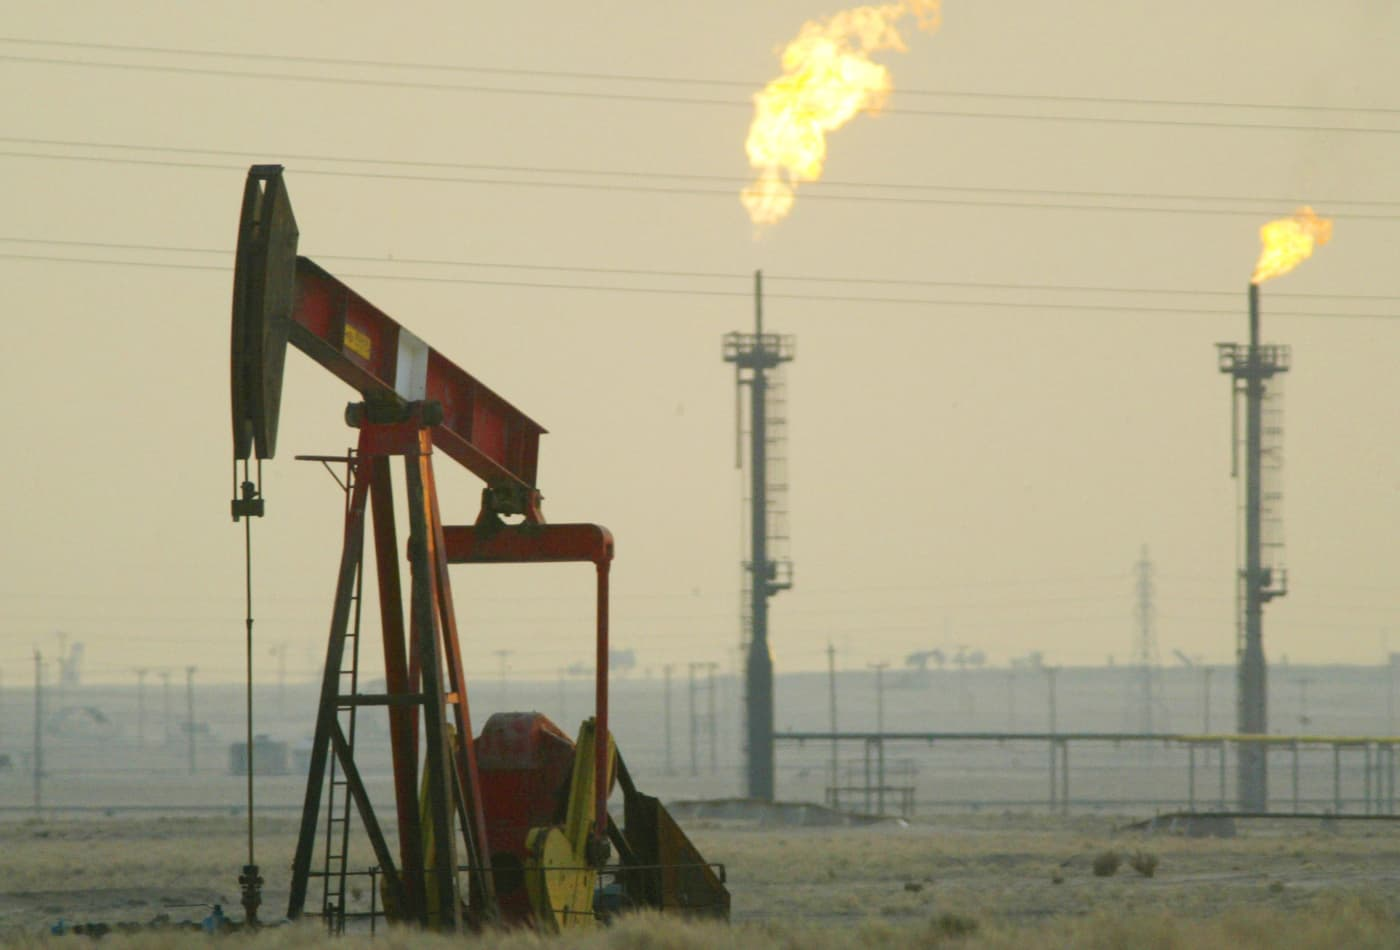 Oil prices could remain weak in March and April, even if OPEC cuts production: S&P Global Platts